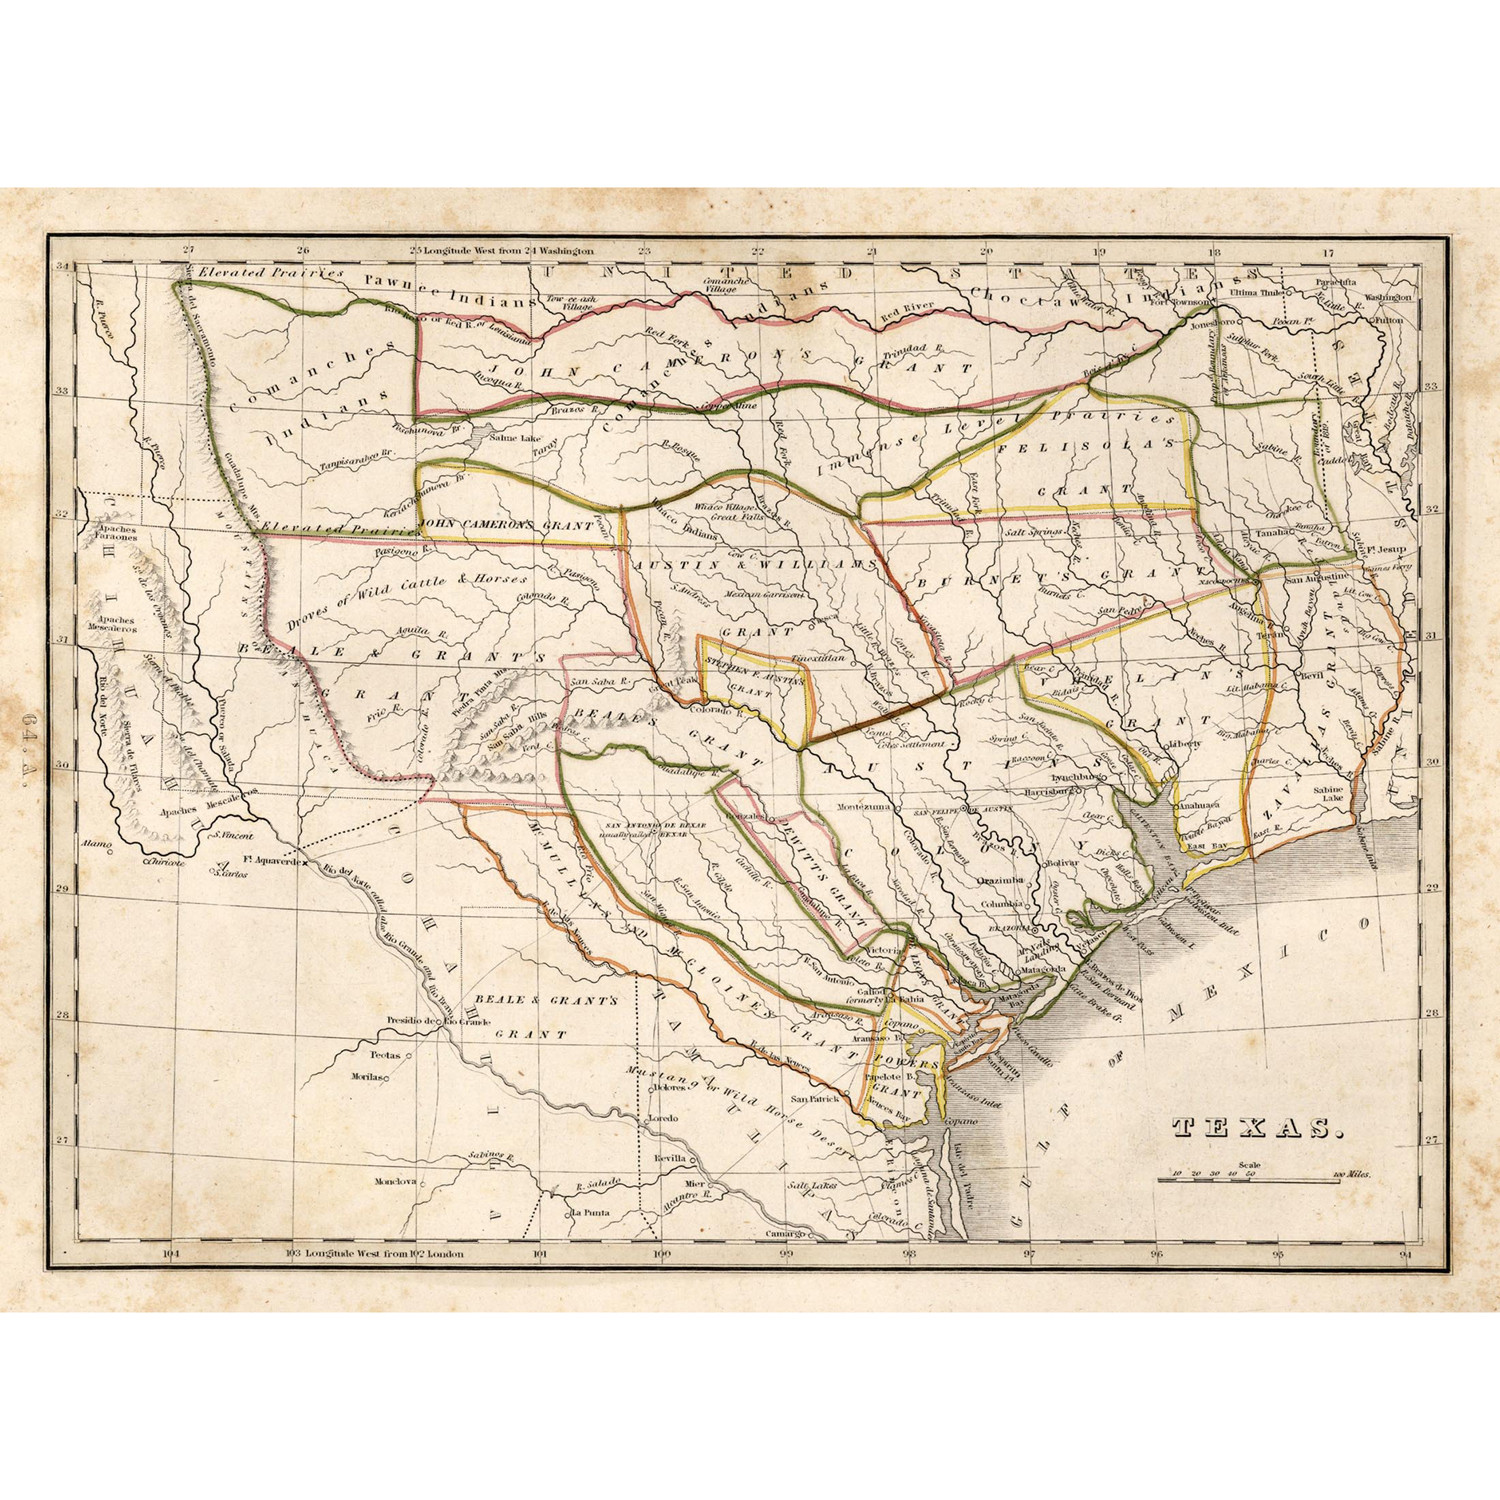 historical essay on texas Texas revolution texas revolution occurred between 1835 and 1836 when the american colonists in texas successfully fought for independence from mexico it happened when mexico was experiencing some internal conflicts and as they tried to establish their newly-obtained independence.